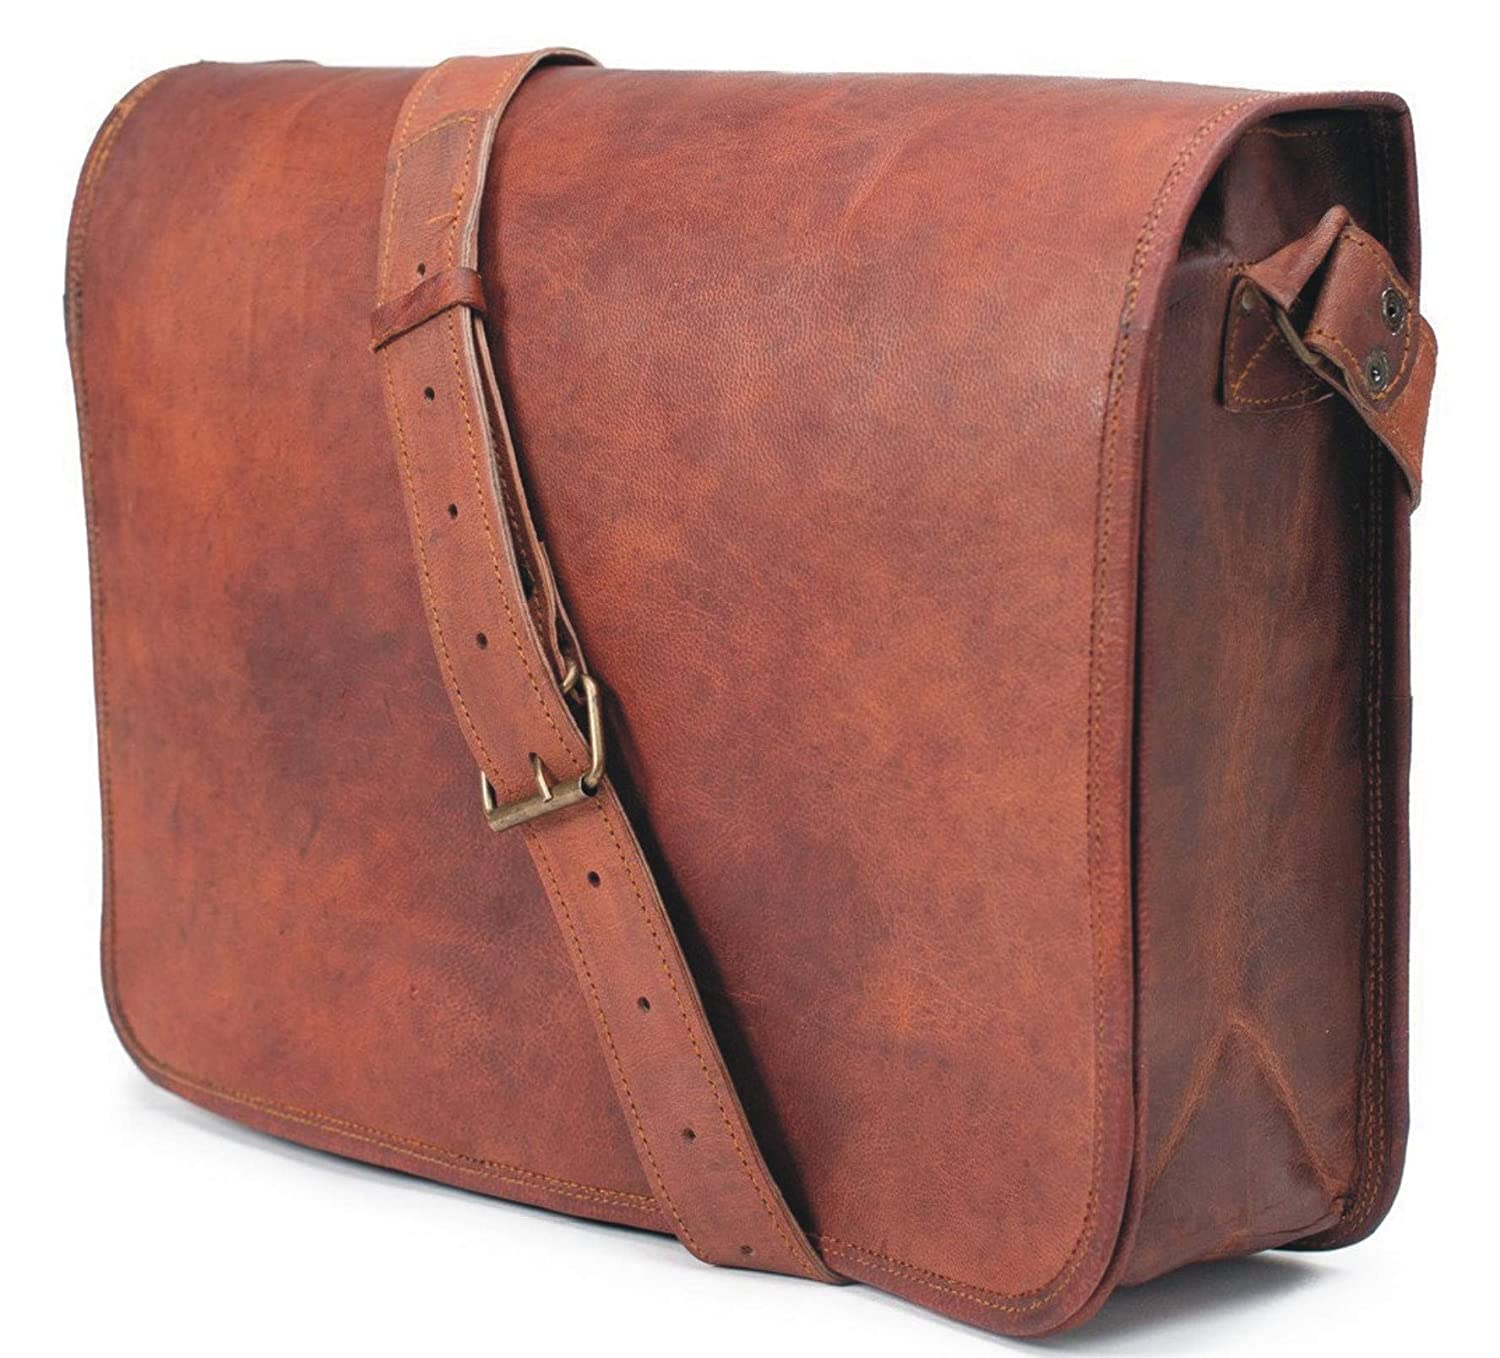 **S-Bazar** FF 18 Inch Vintage Handmade Leather Messenger Bag for Laptop Briefcase Satchel Bag